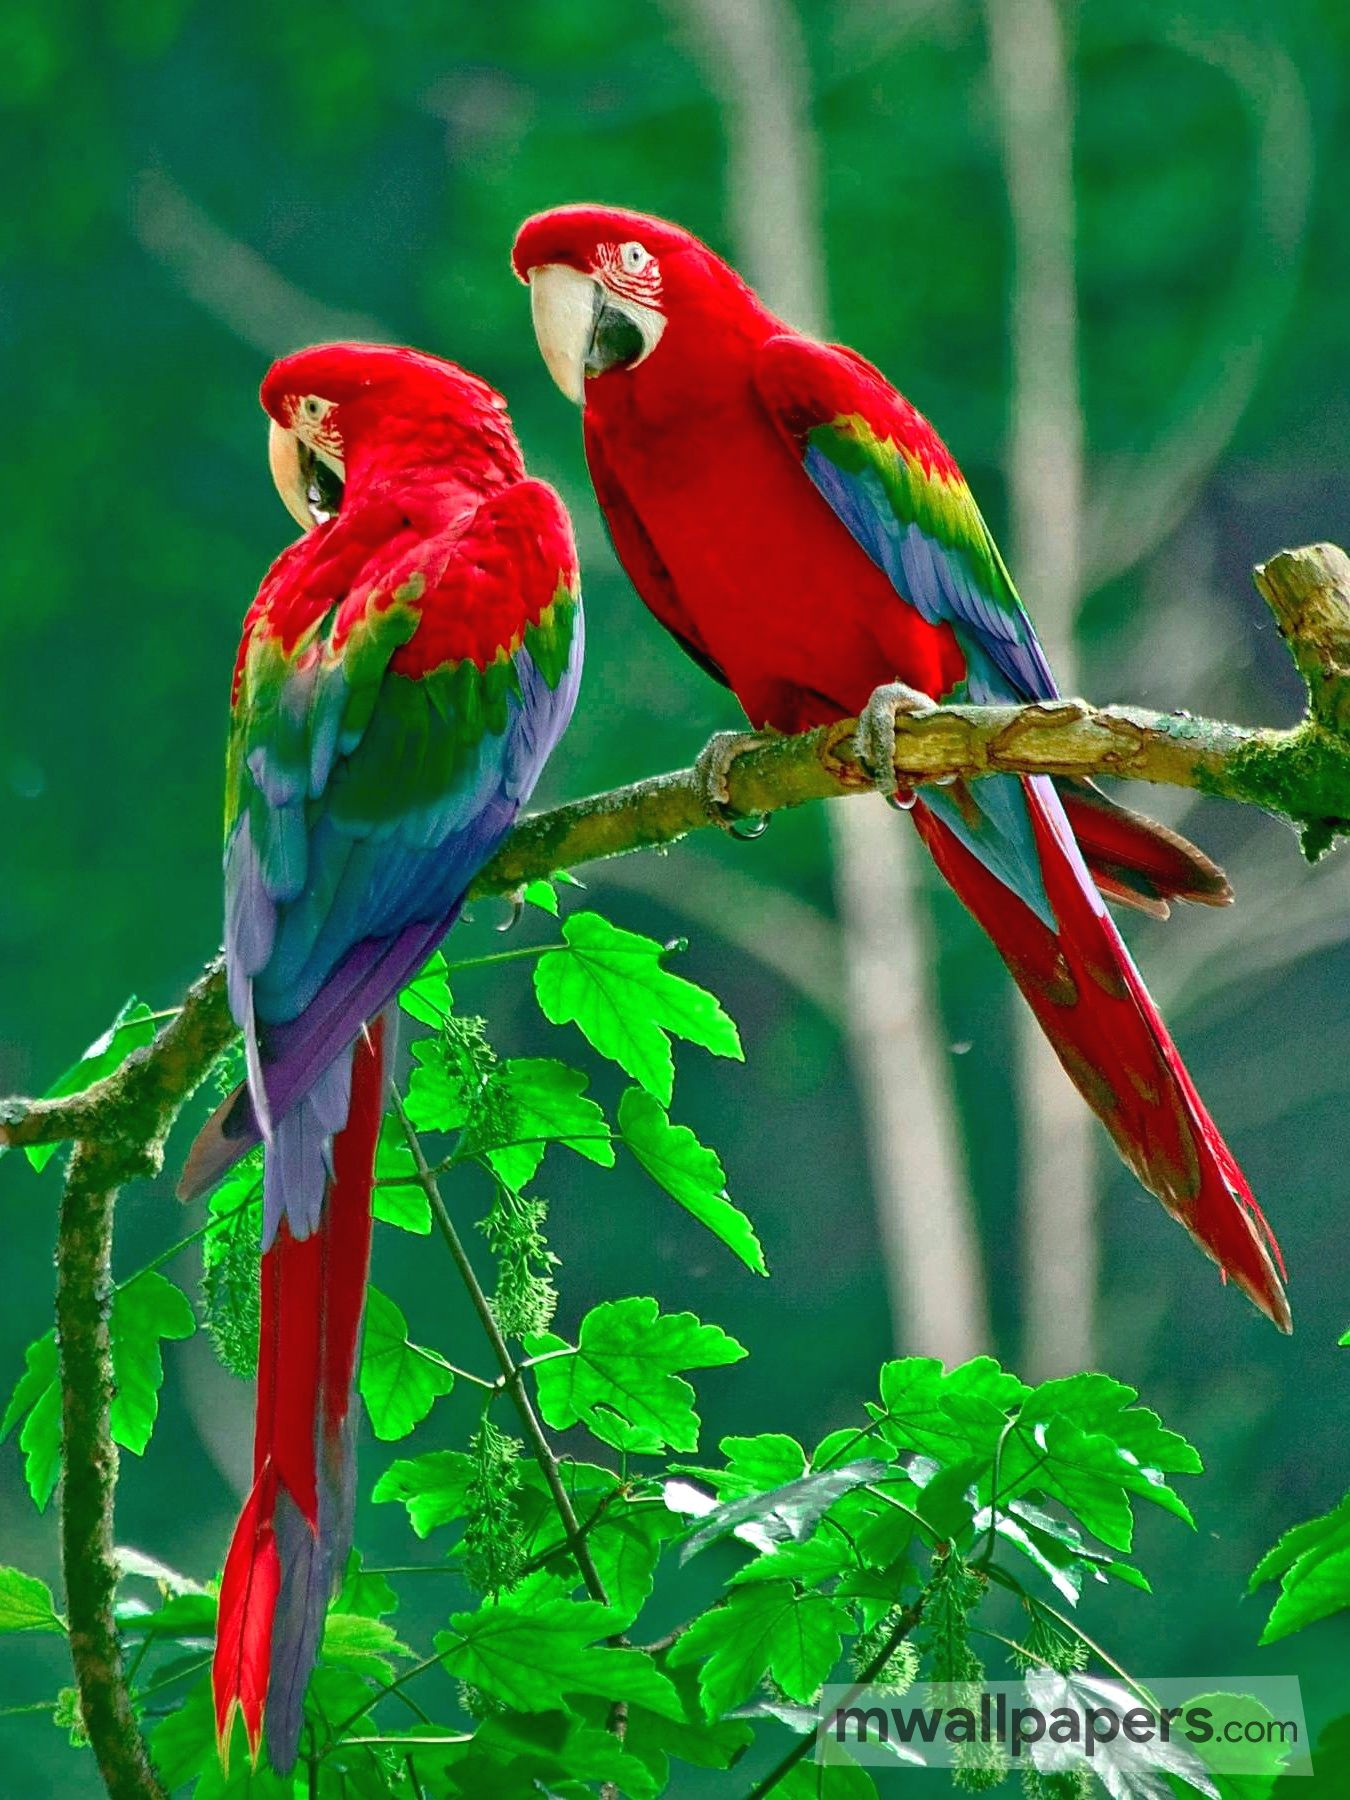 Bird Images and Wallpapers (HD) (325) - Birds